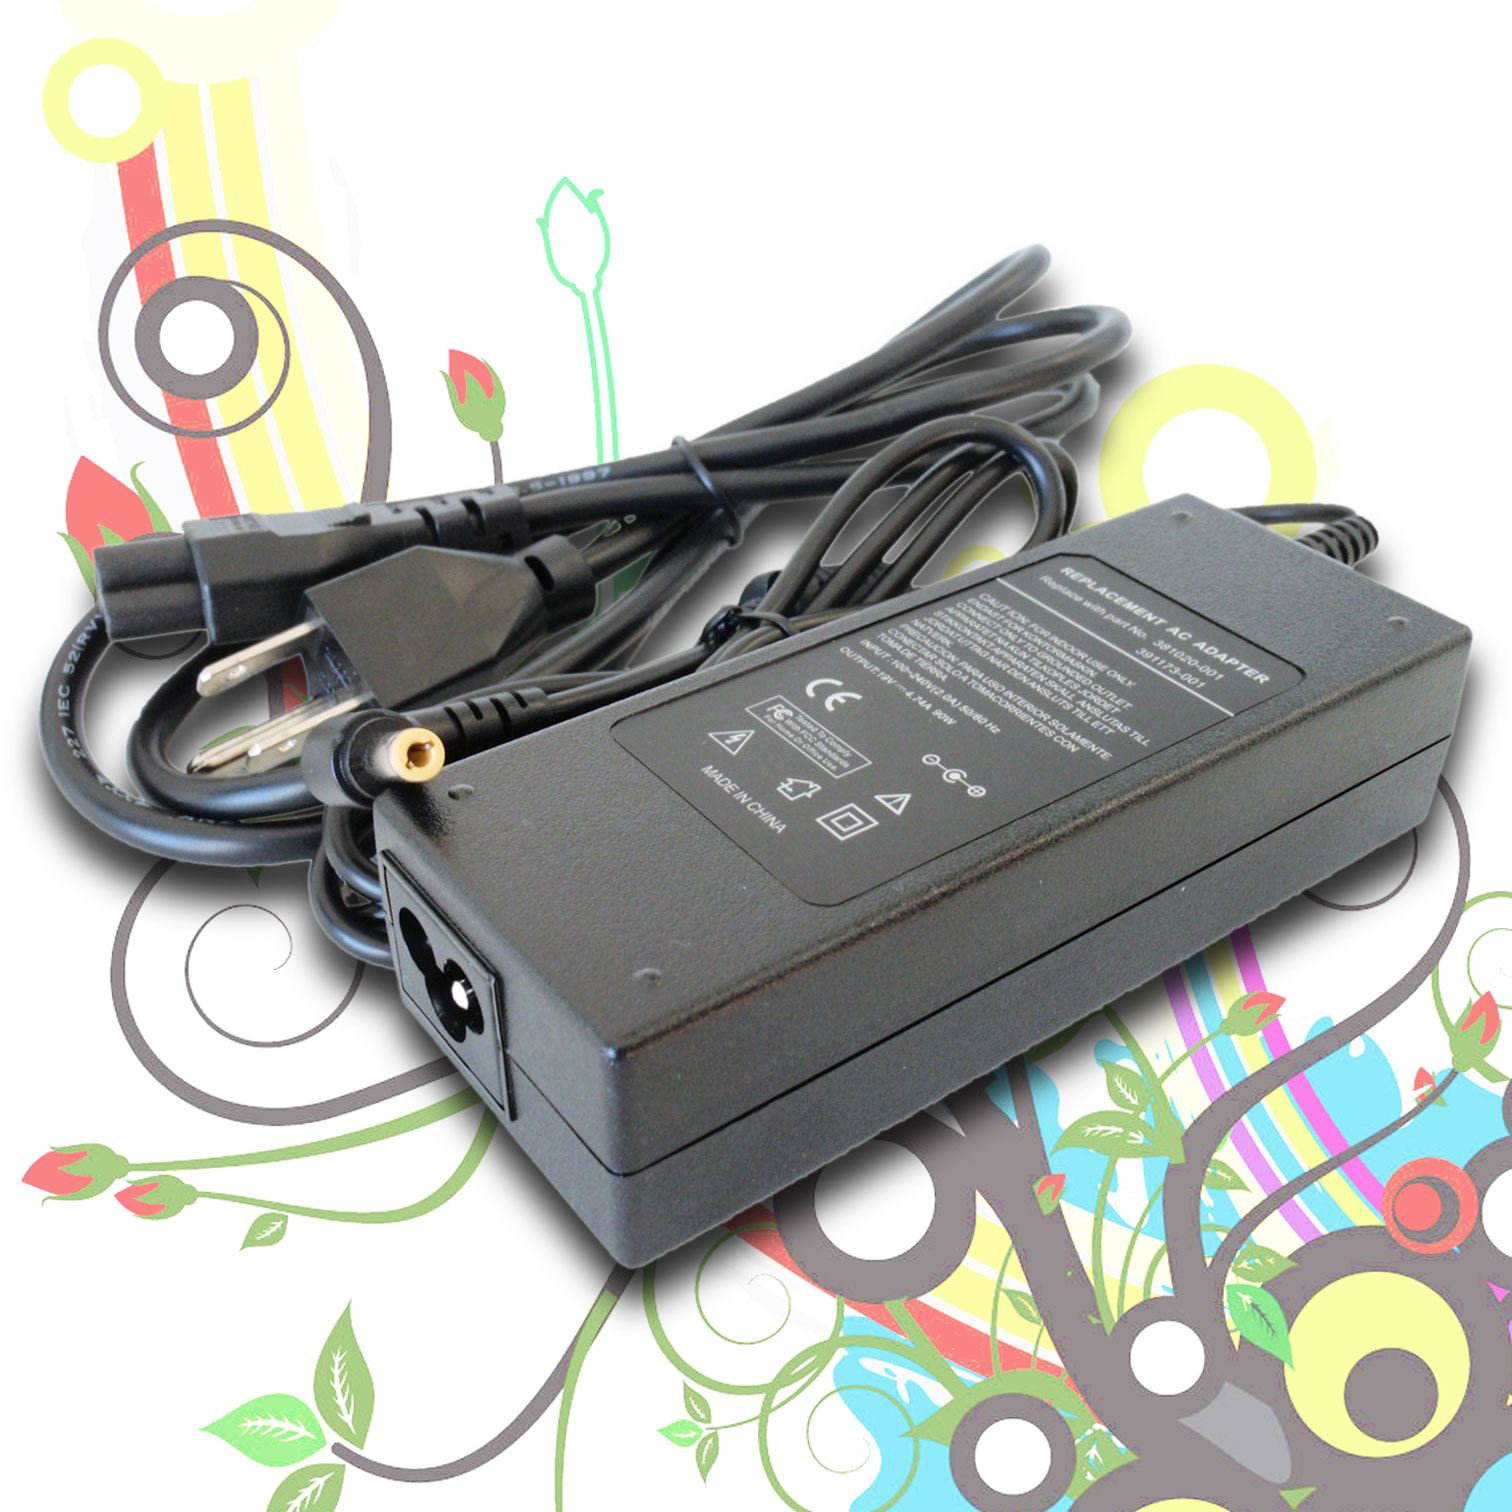 AC Power Adapter Gateway M-150XL NX850X MX6708h E-295C G Battery Charger w Cord